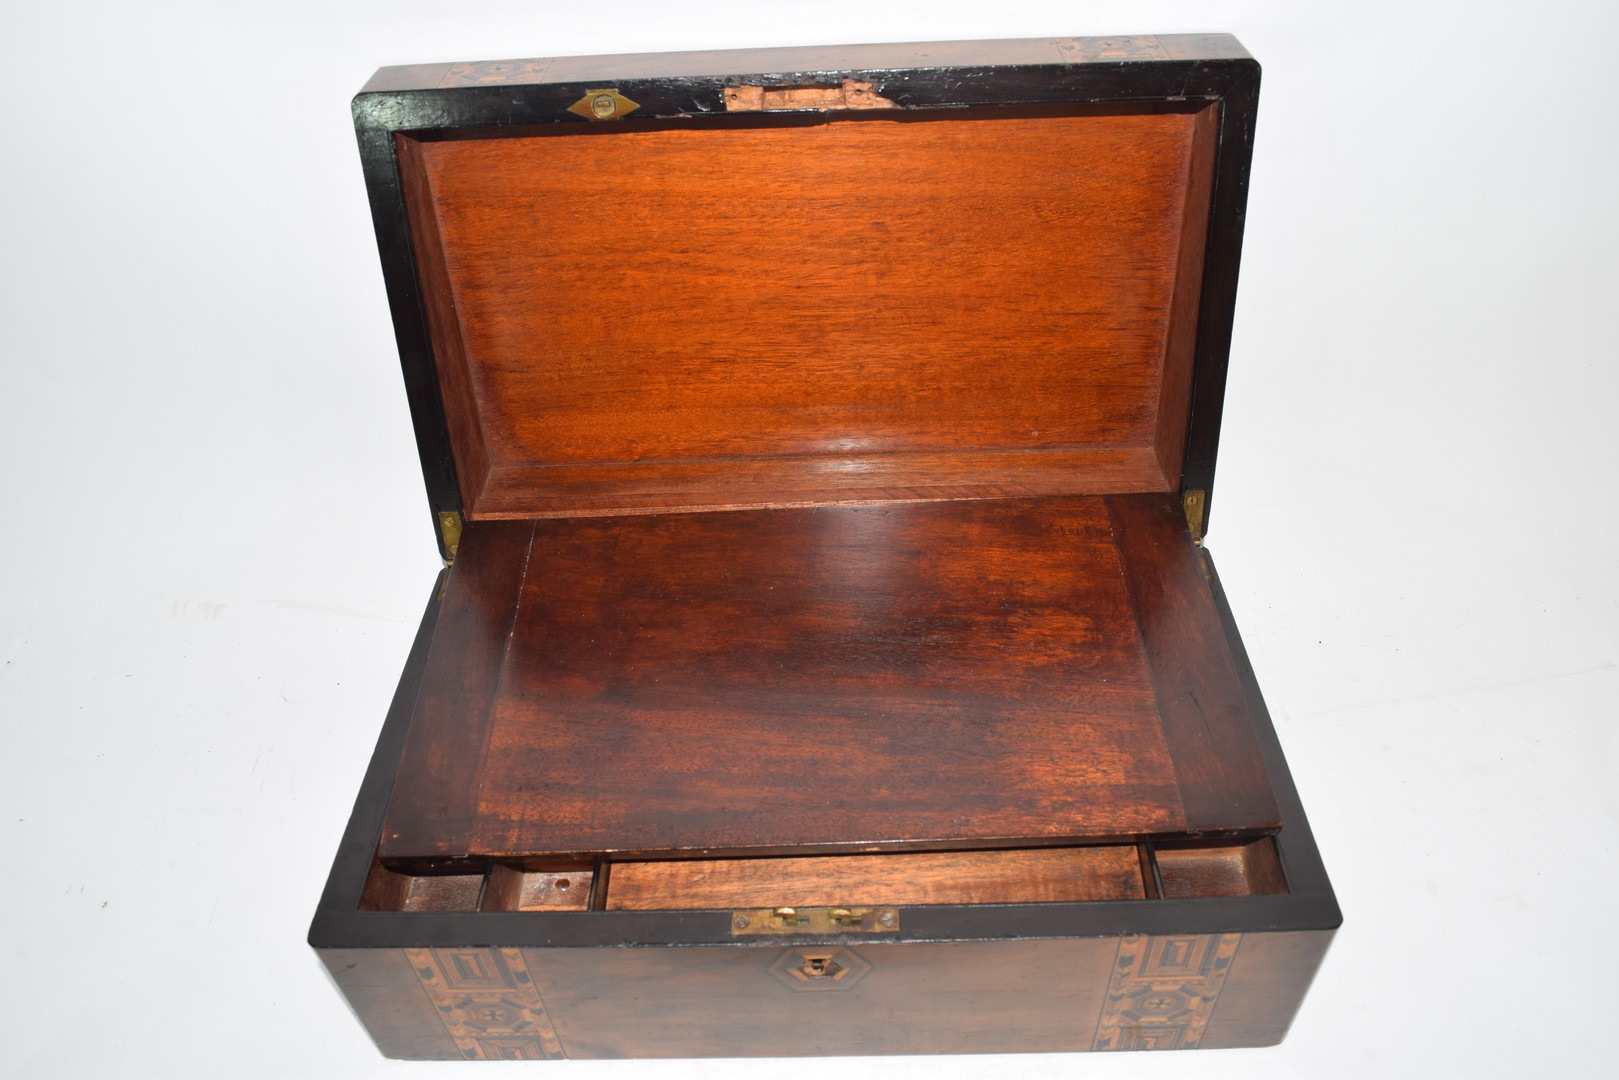 Late 19th century walnut and marquetry inlaid writing box - Image 5 of 6